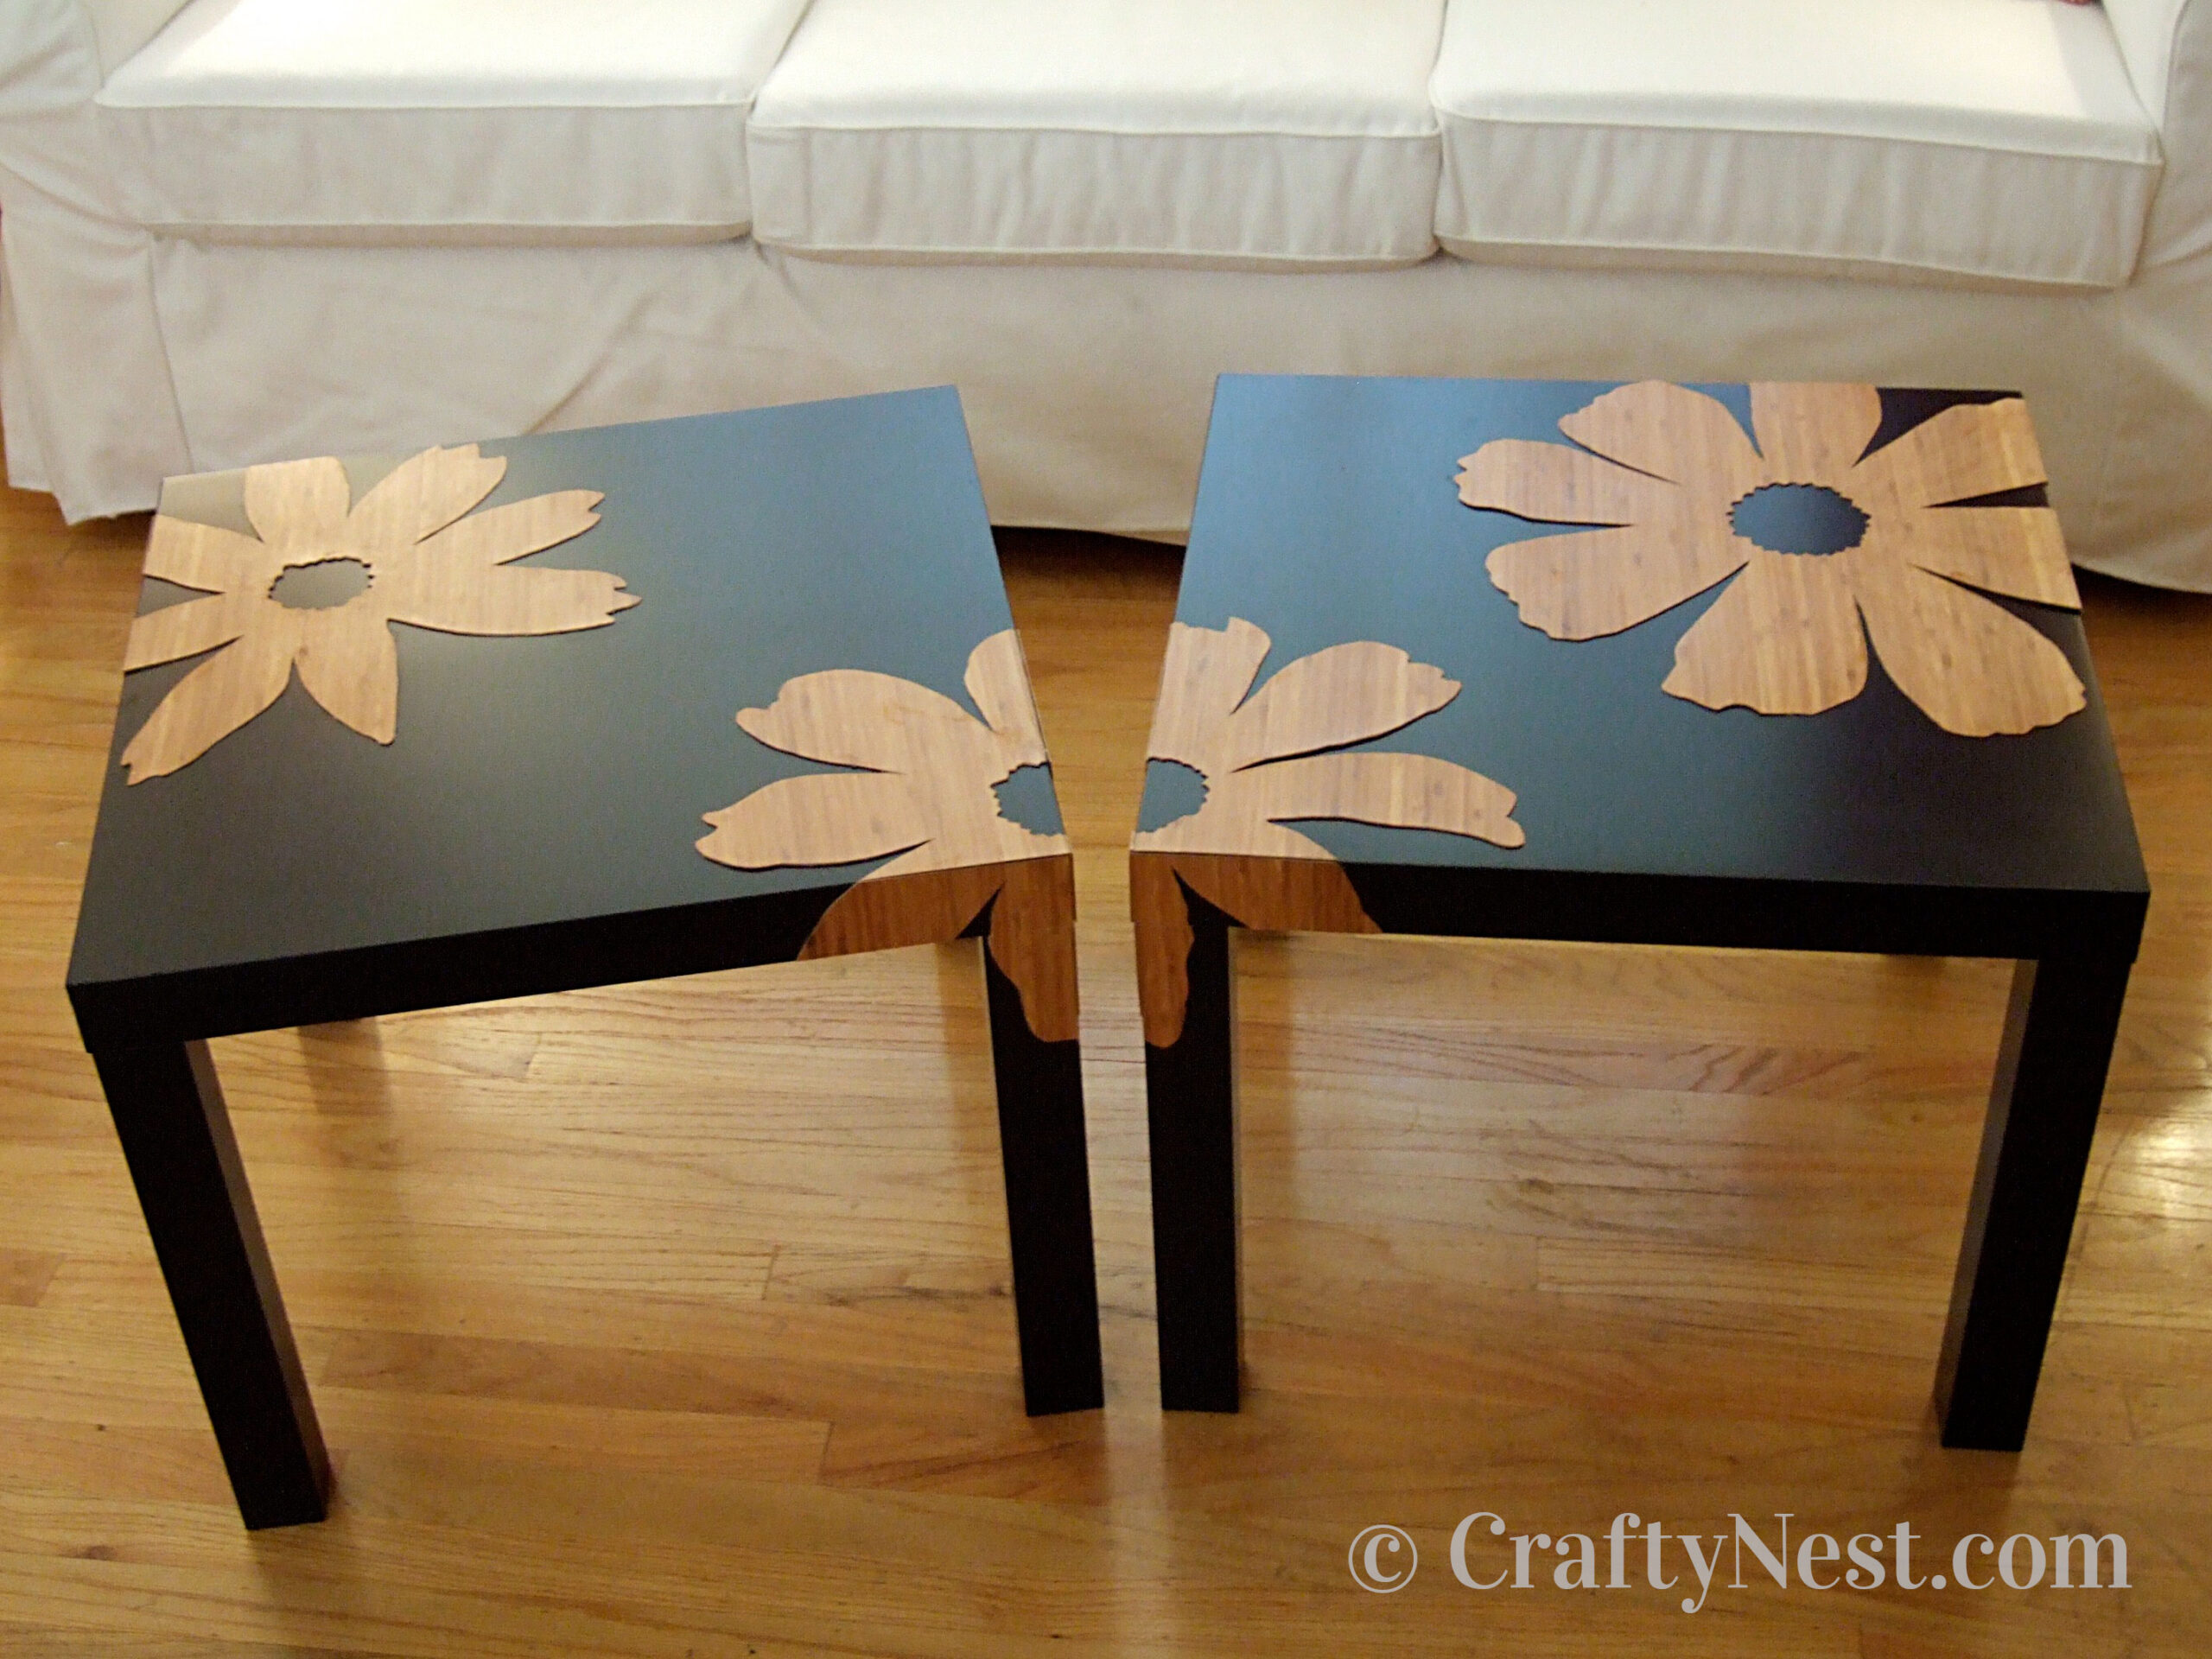 Ikea tables with bamboo-flower overlays, photo